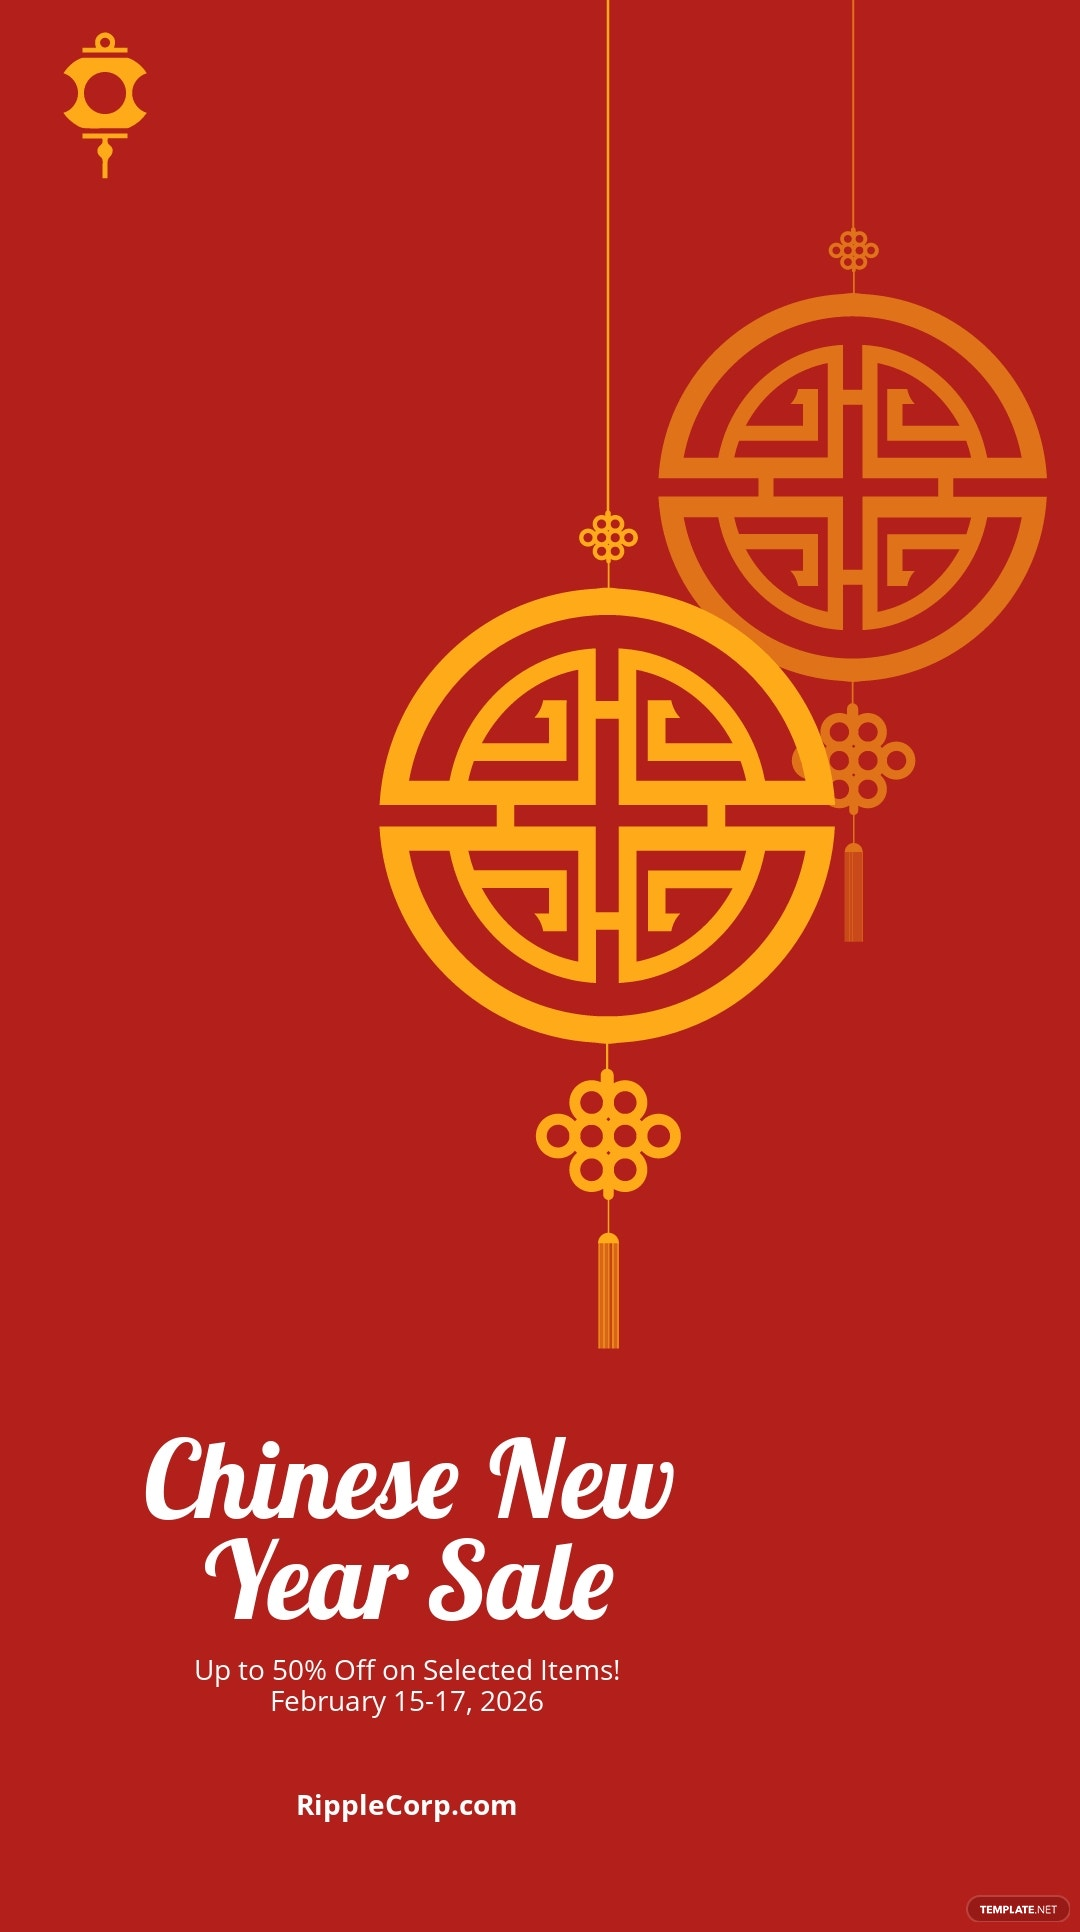 Chinese New Year Sale Instagram Story Template.jpe